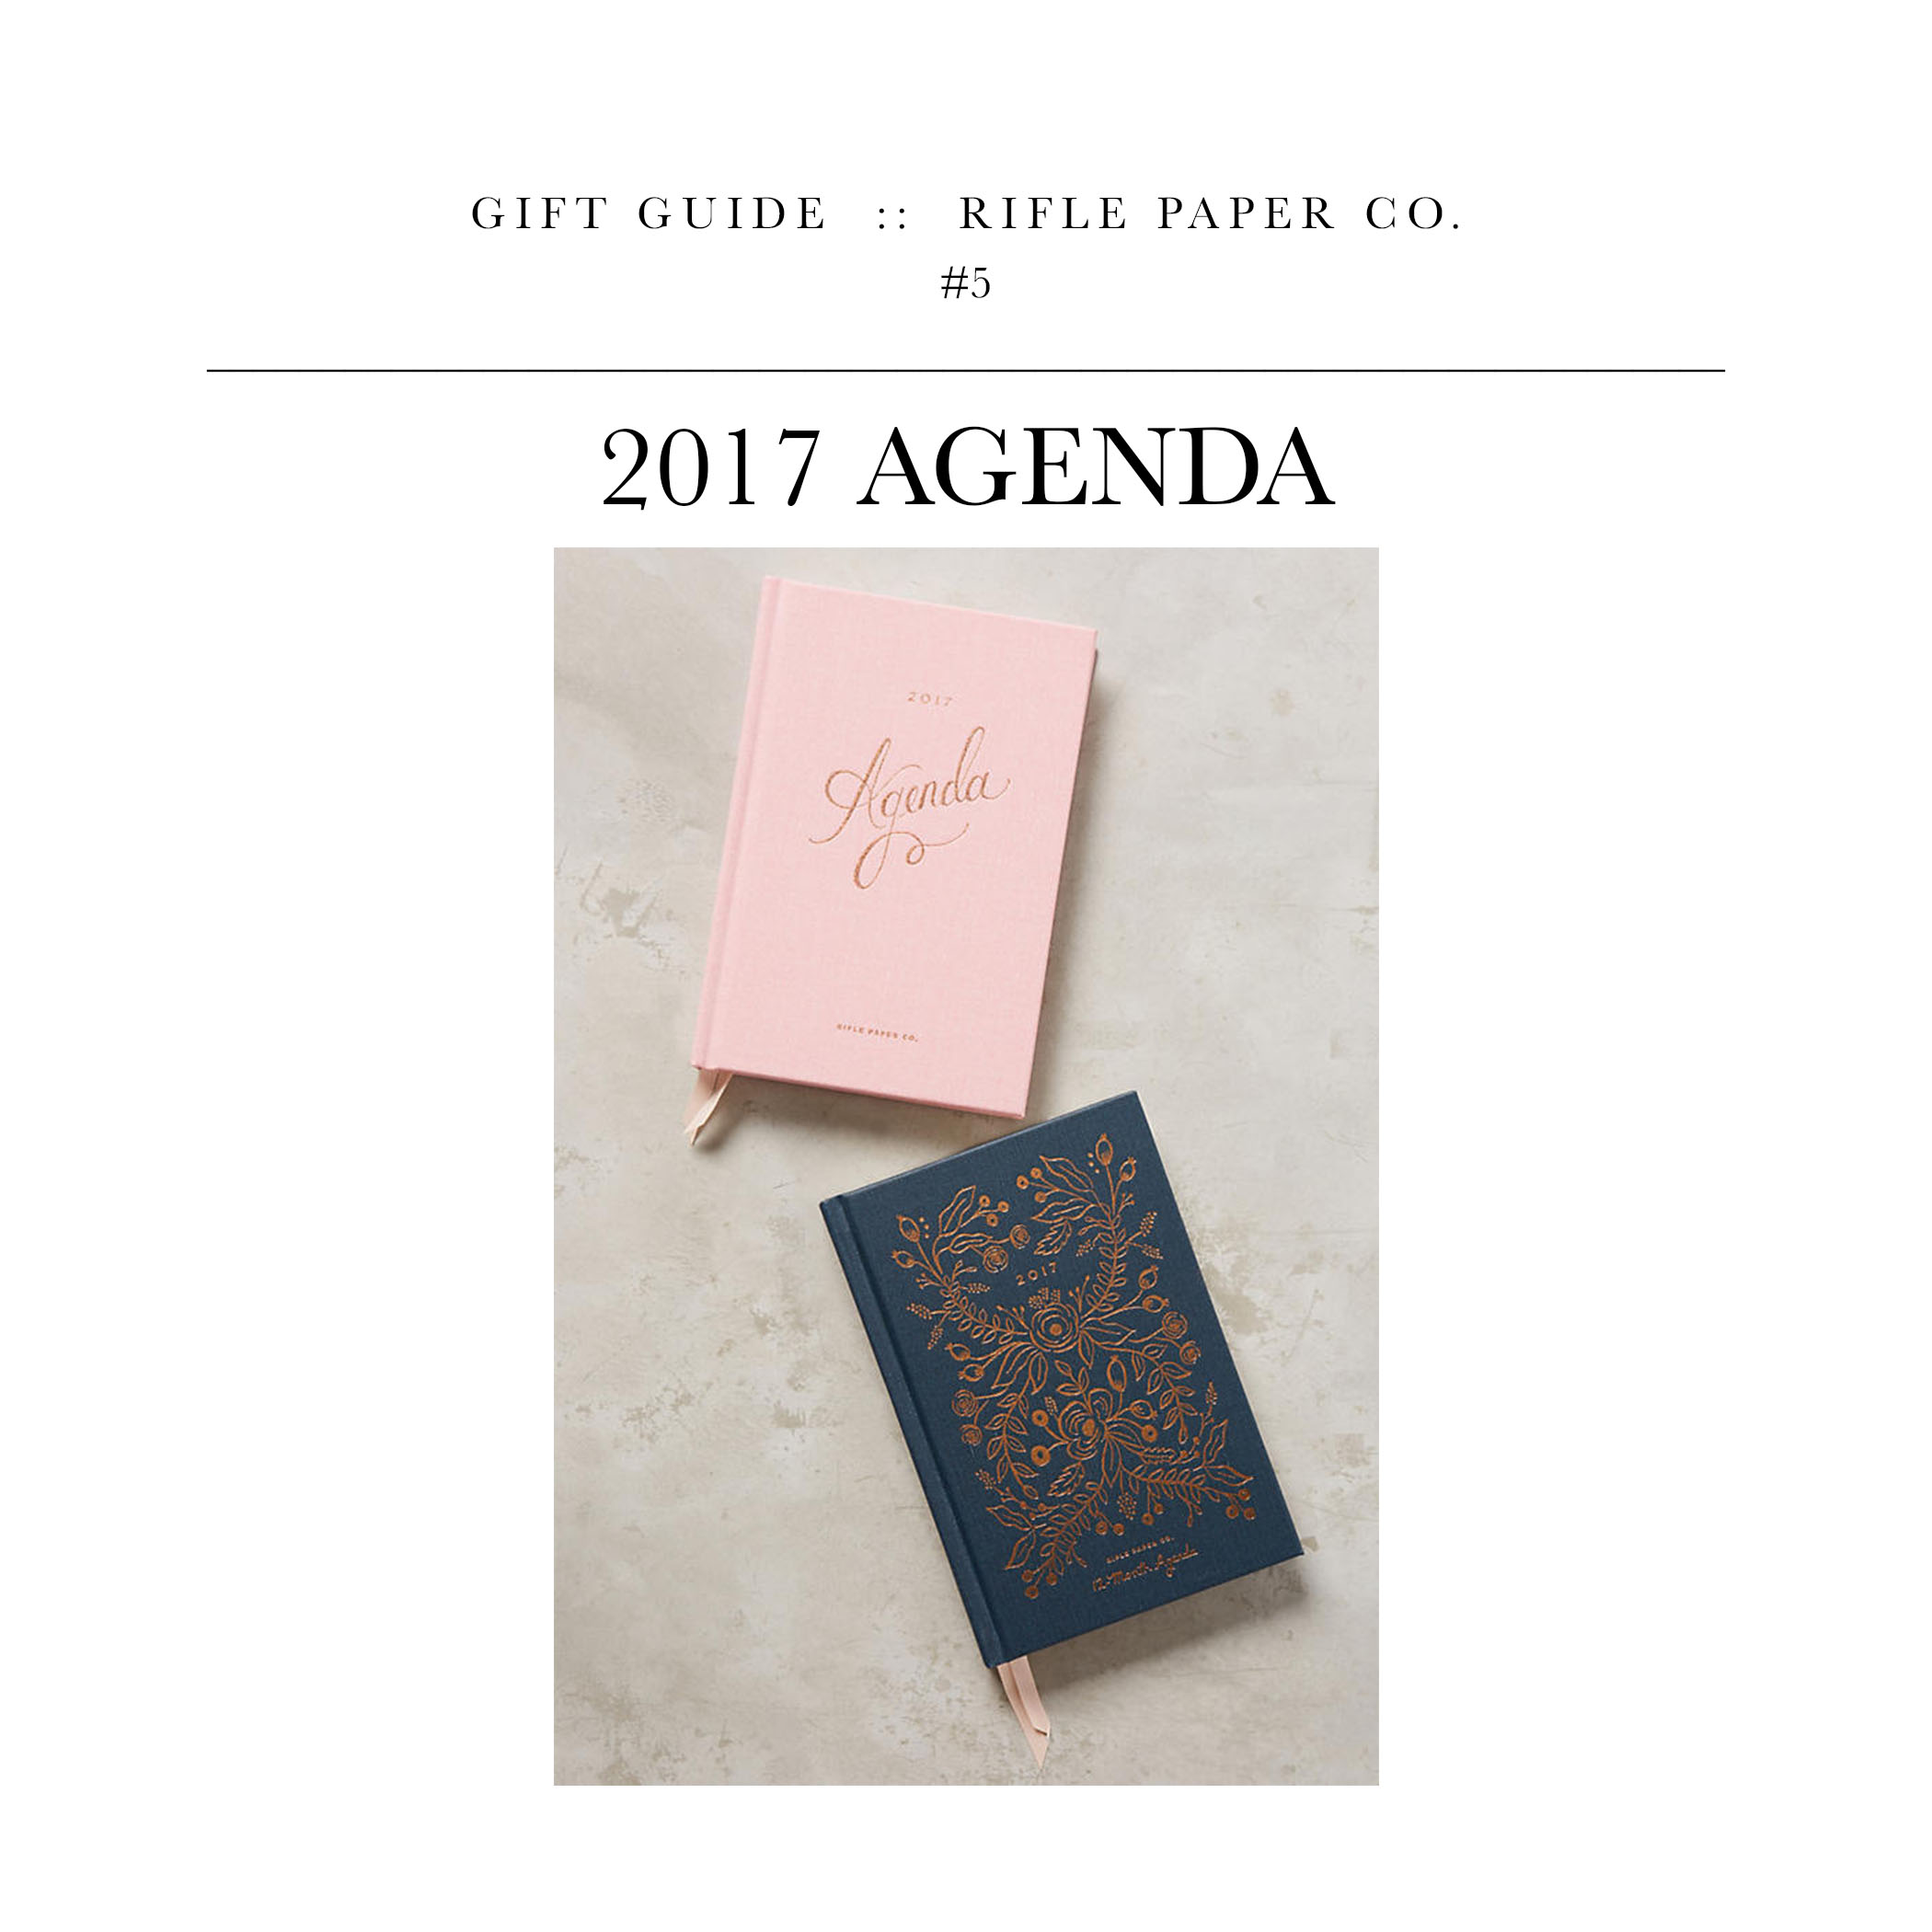 2017 Agenda  via Rifle Paper Co. //  A gift for the workstation.